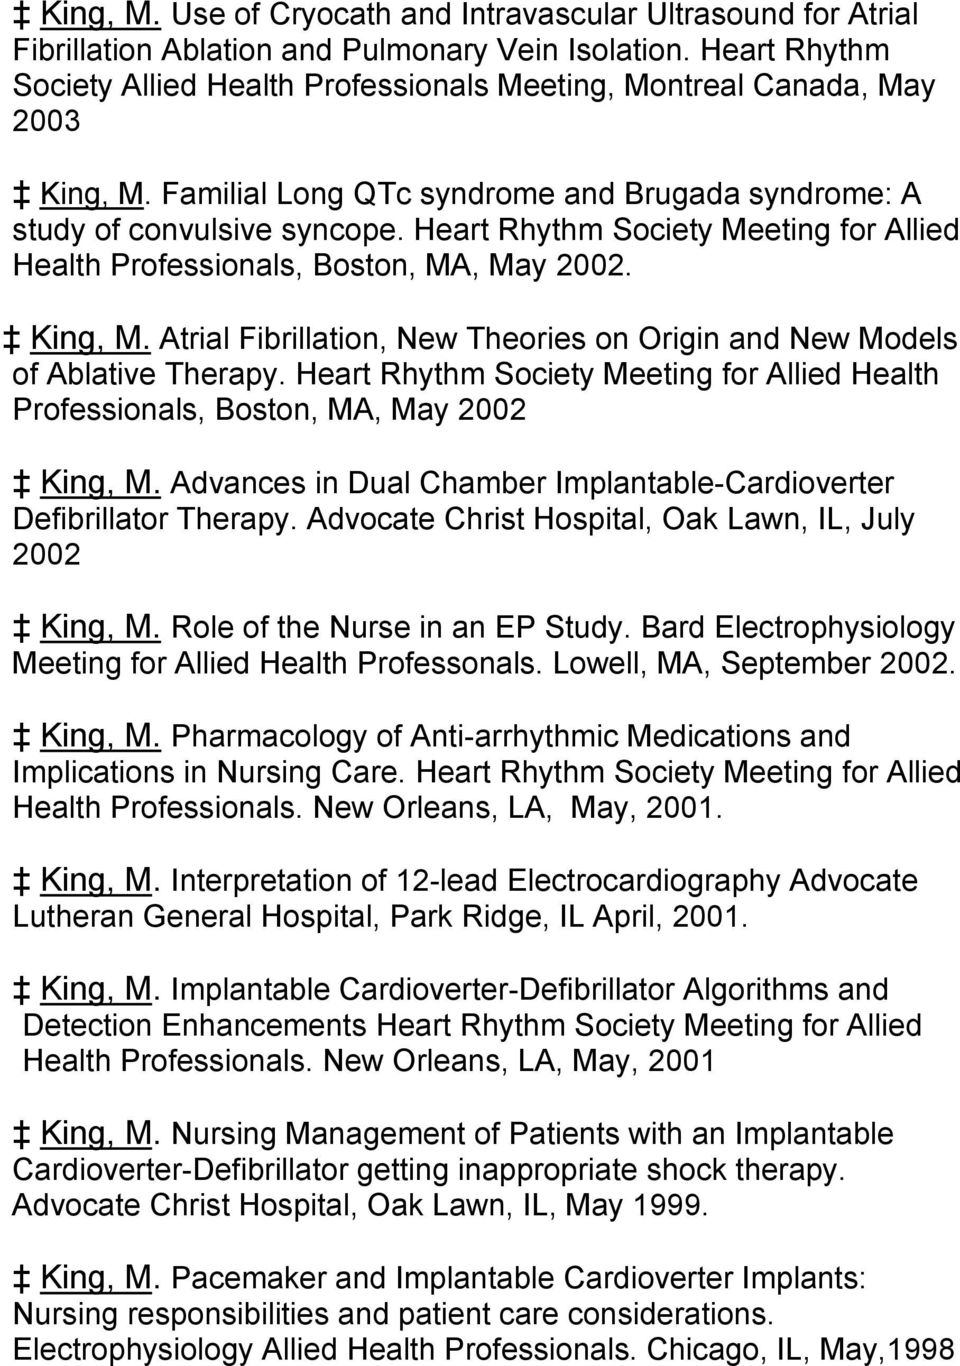 Heart Rhythm Society Meeting for Allied Health Professionals, Boston, MA, May 2002. King, M. Atrial Fibrillation, New Theories on Origin and New Models of Ablative Therapy.